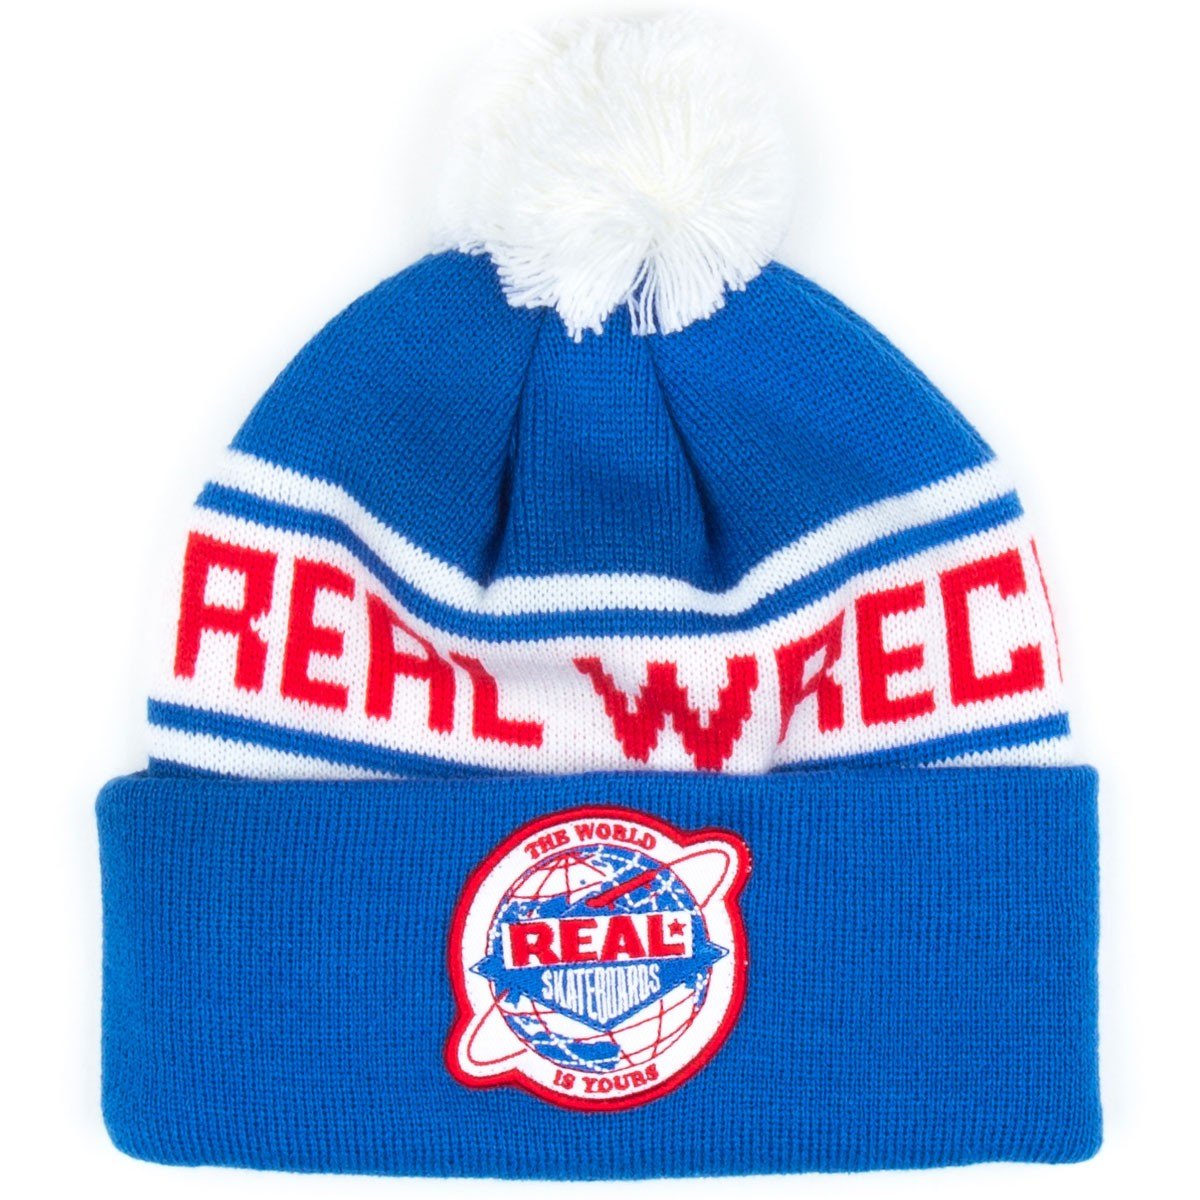 Real Wreck Crew Pom Beanie - Royal